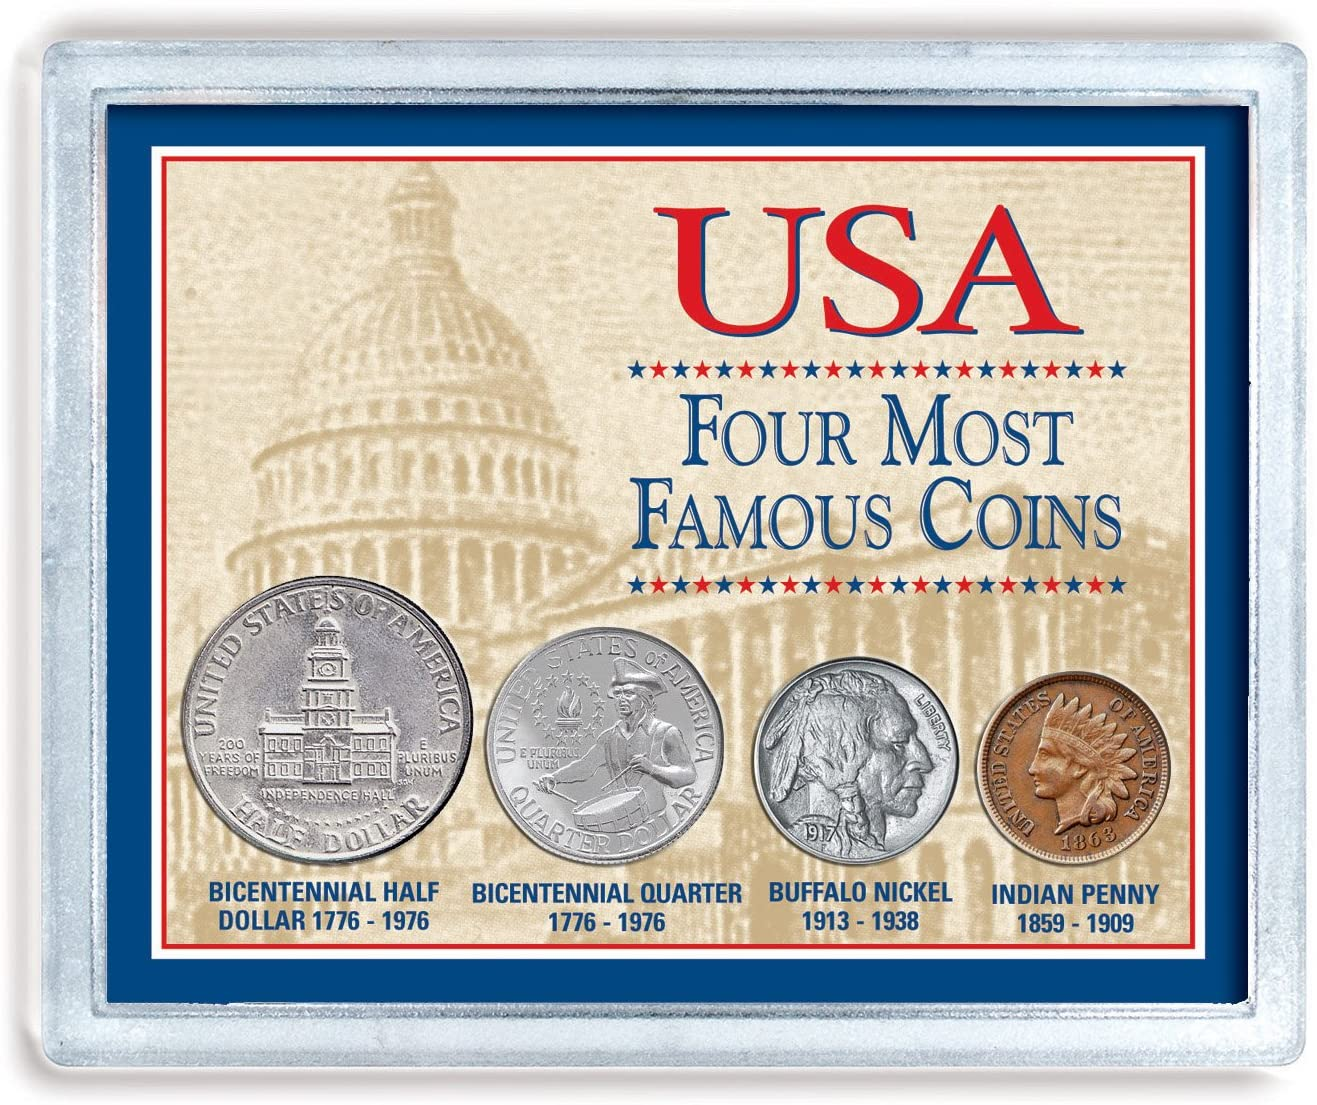 USA Four Most Famous Coins | Genuine Coin Set Buffalo Nickel, Indian Head Cent, Bicentennial Half Dollar and Quarter | Certificate of Authenticity – American Coin Treasures